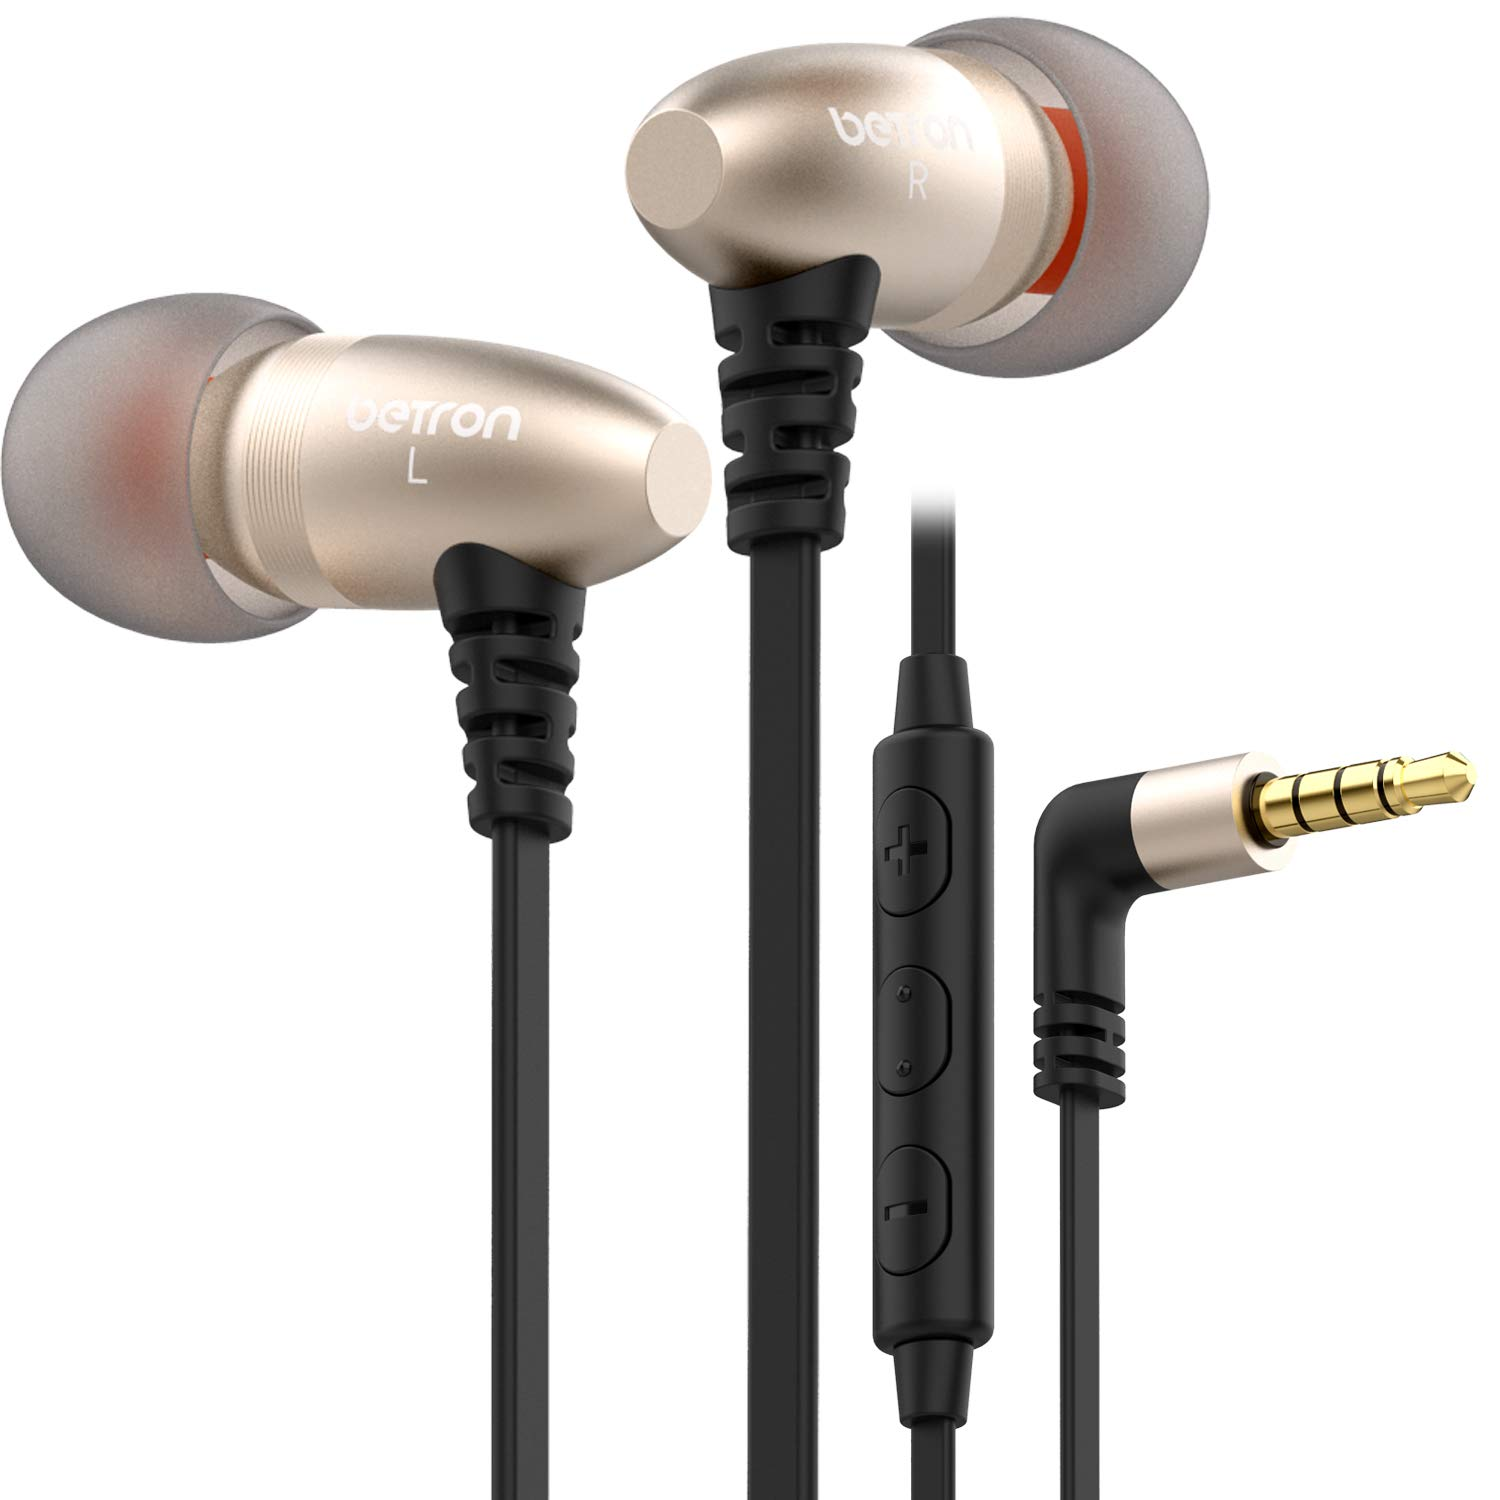 Betron W58 Noise Isolating Headphone, In Ear Earphones With Mic and Volume Control, Balanced Bass Driven Sound, Includes Carry Case and Various Size Earbuds, Gold